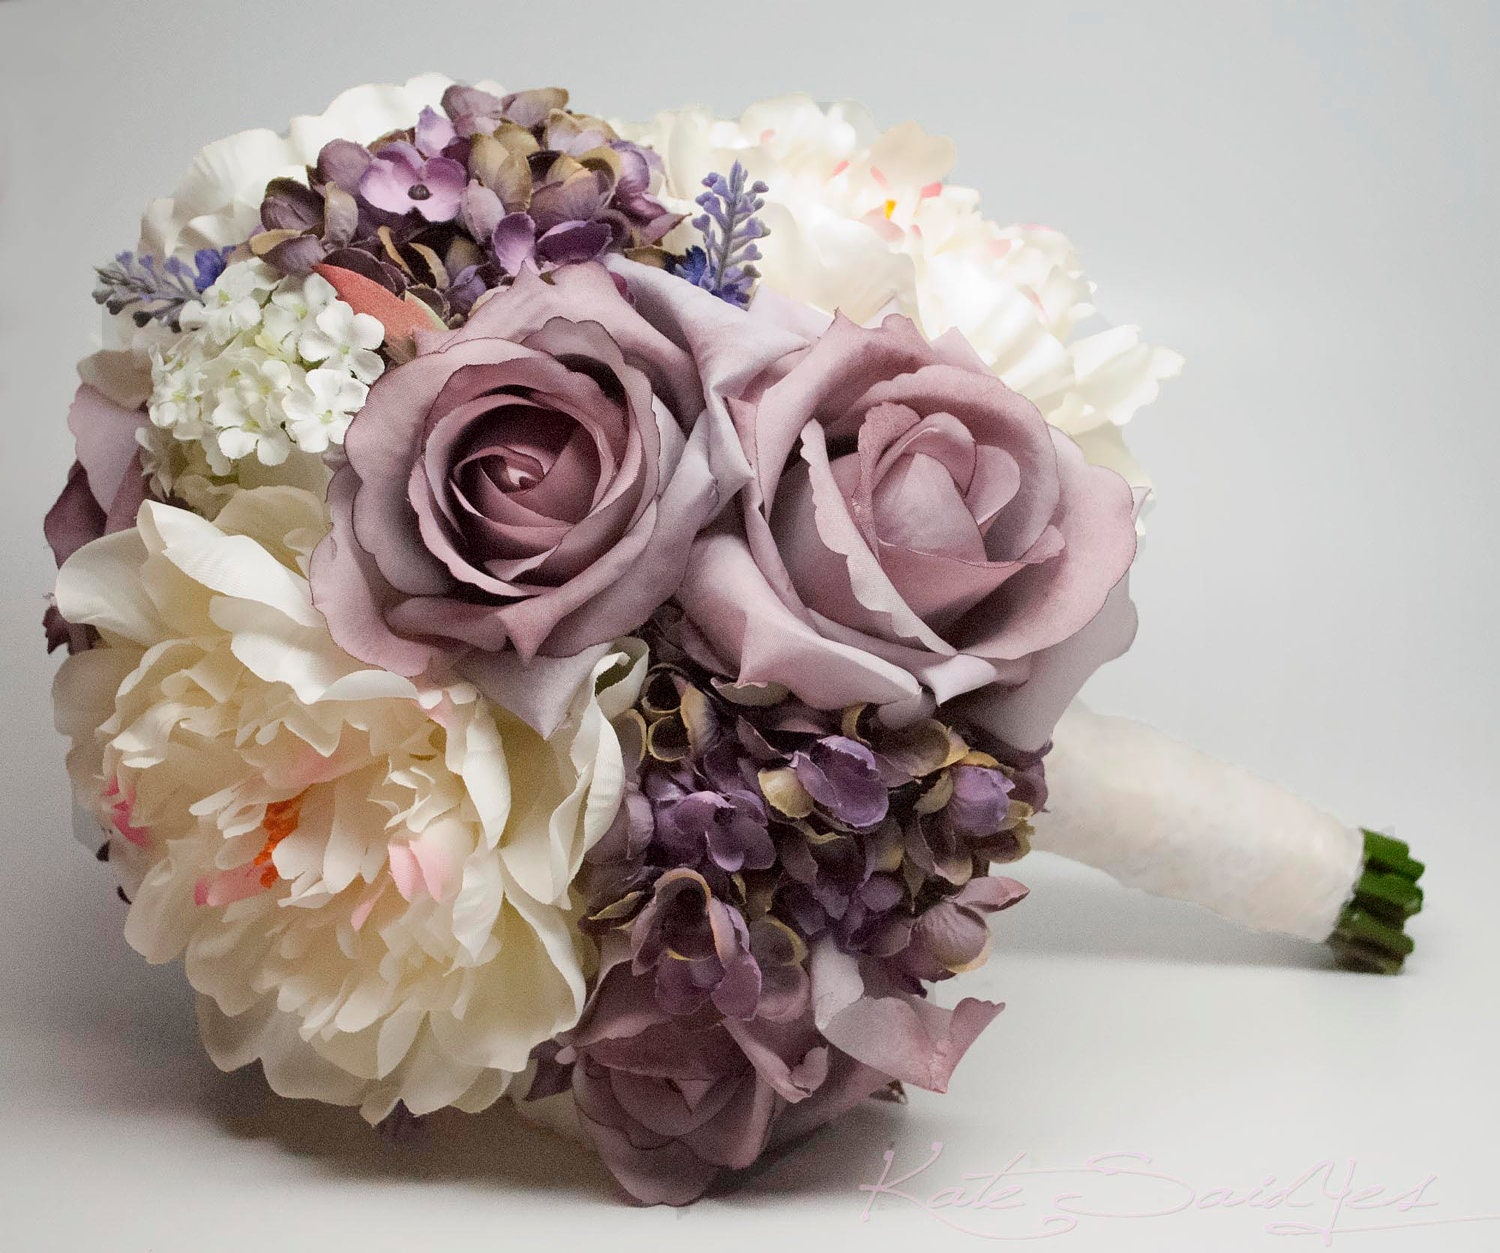 Lavender rose hydrangea and peony shabby chic wedding bouquet for Wedding bouquets